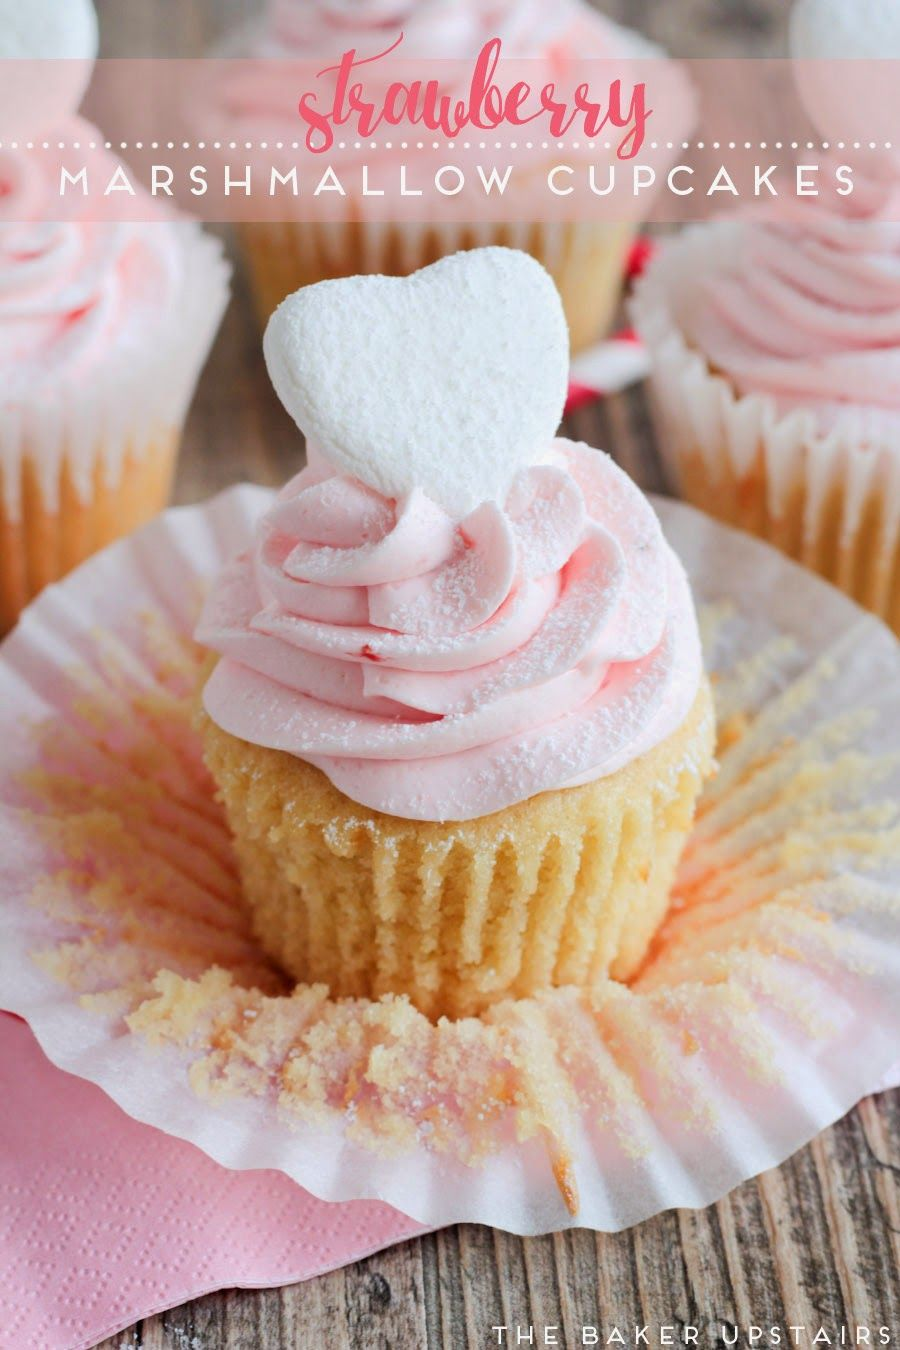 Strawberry marshmallow cupcakes - vanilla cupcakes filled with marshmallow cream and topped with a sweet strawberry marshmallow buttercream. Yum! www.thebakerupstairs.com